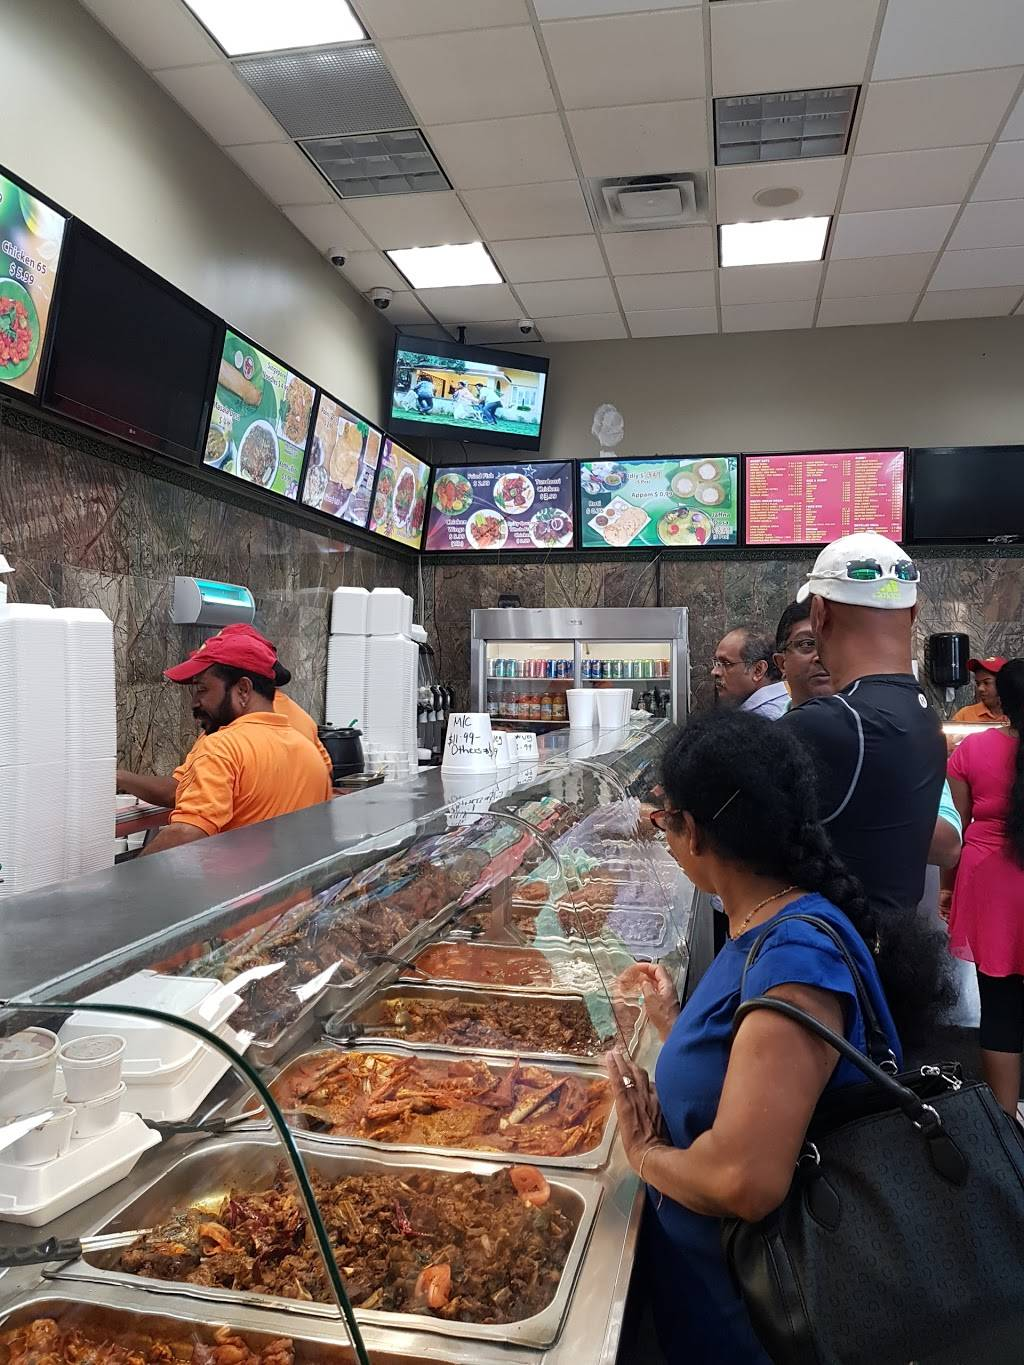 New Spiceland Restaurant   meal takeaway   6065 Steeles Ave E, Scarborough, ON M1X 1N5, Canada   4163353035 OR +1 416-335-3035